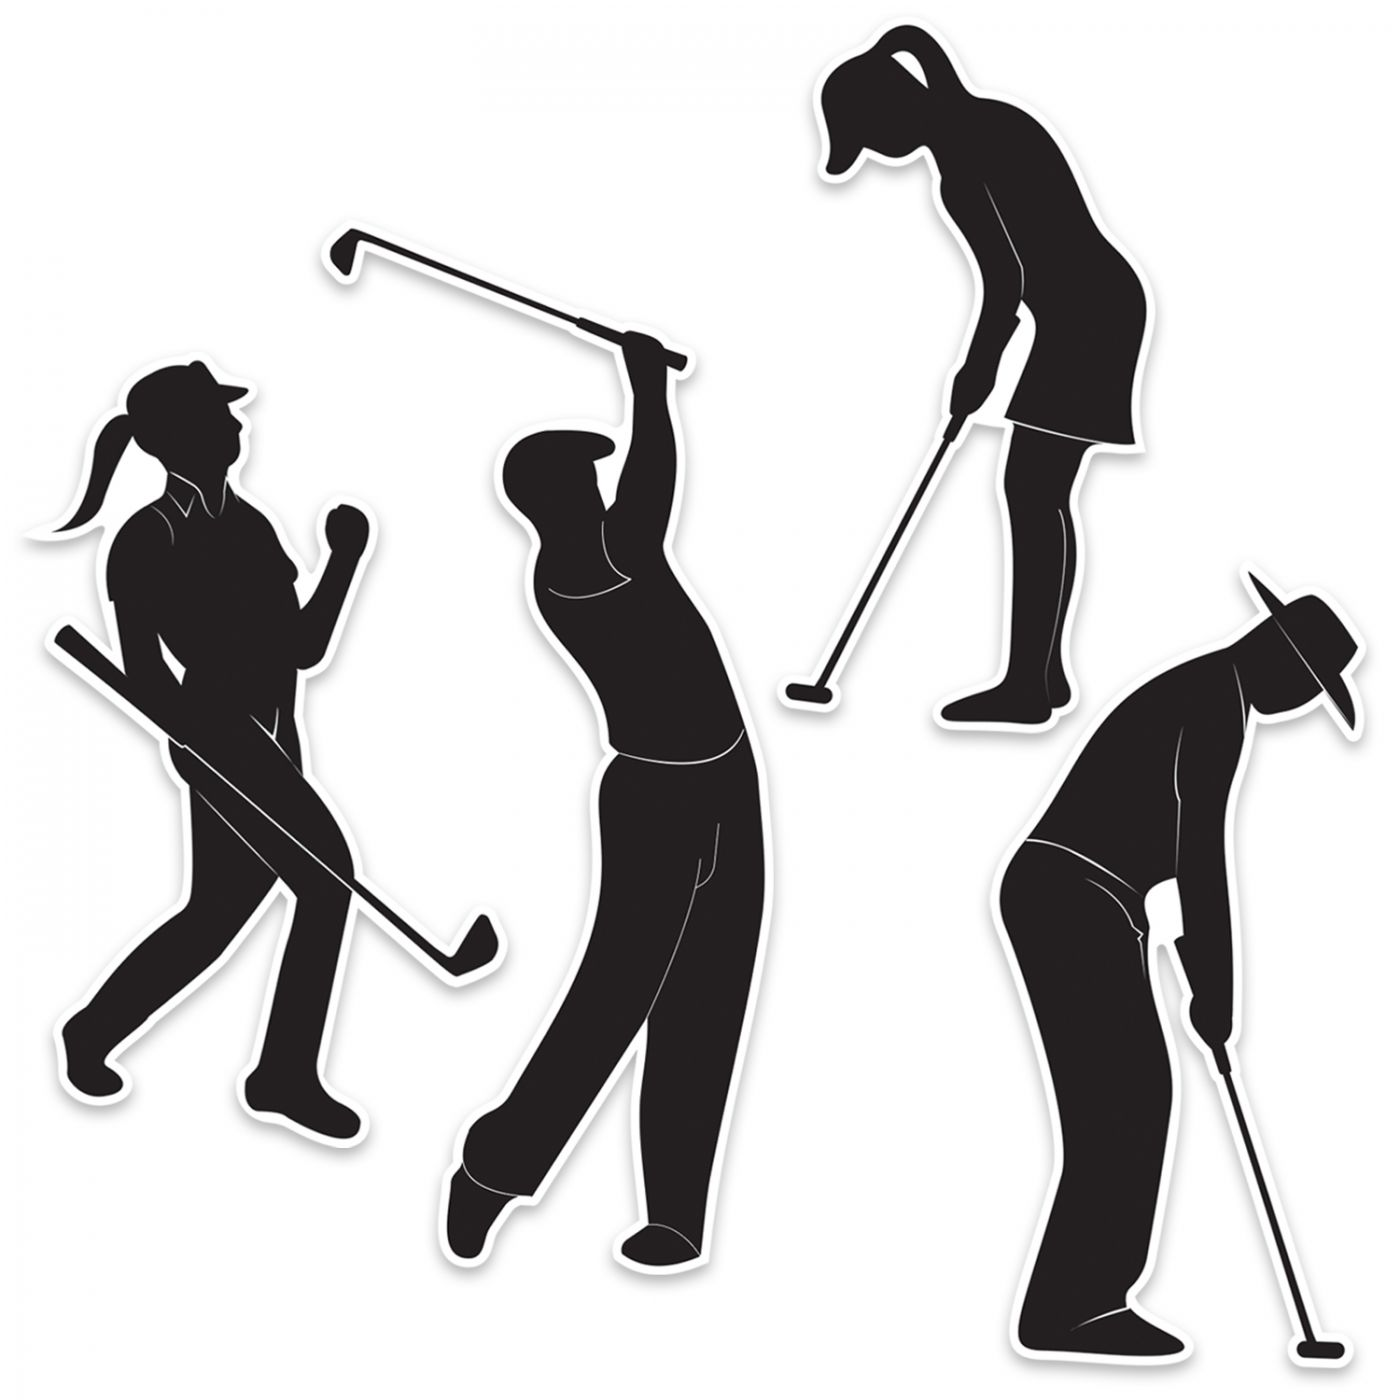 Golf Silhouettes image